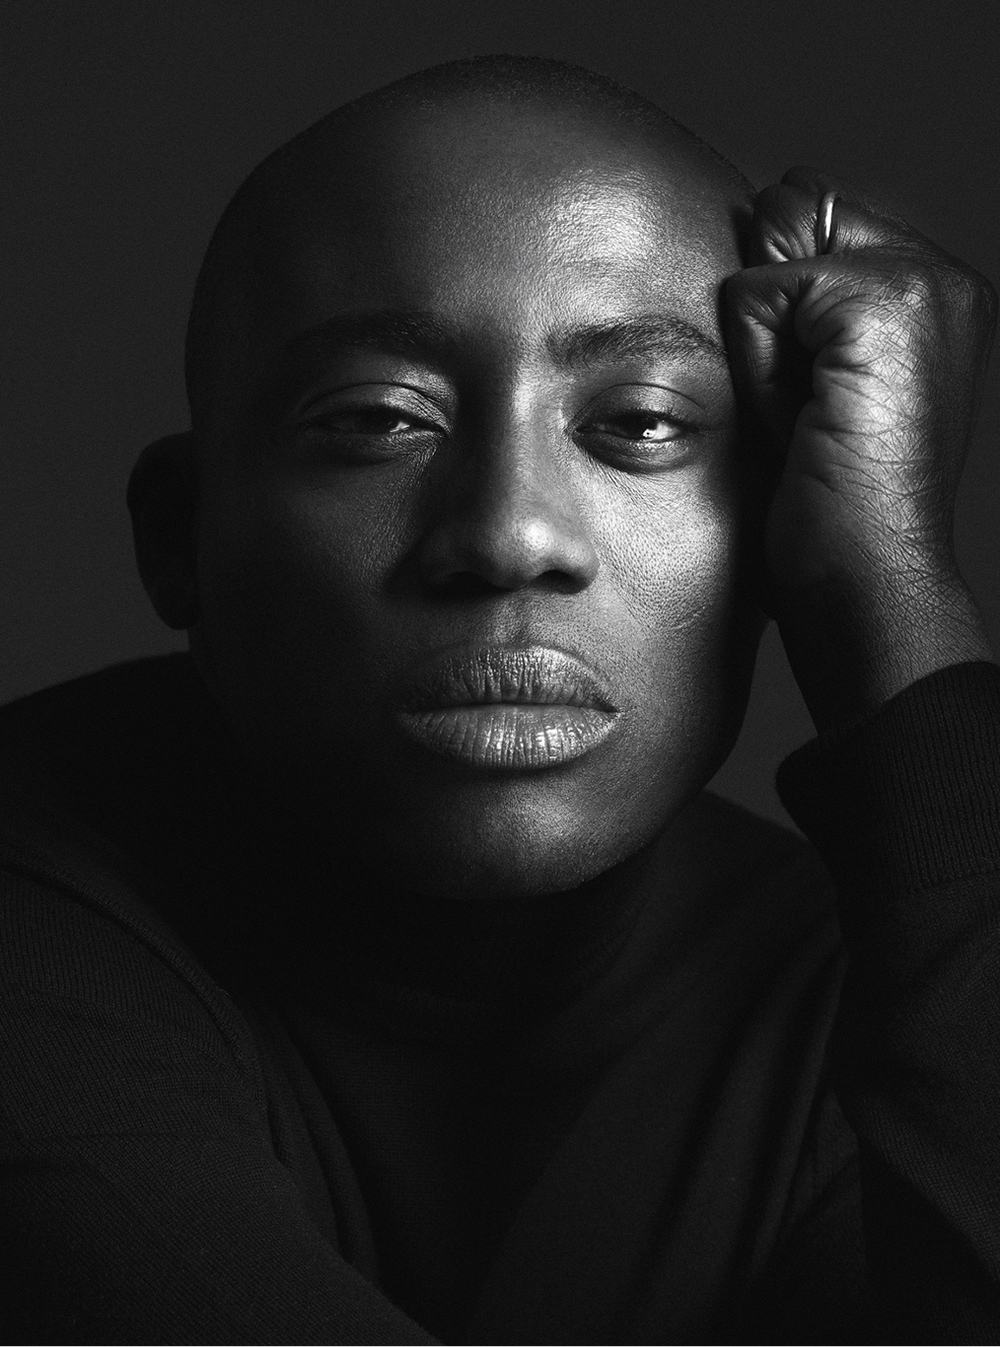 Edward Enninful, W magazine fashion and style director